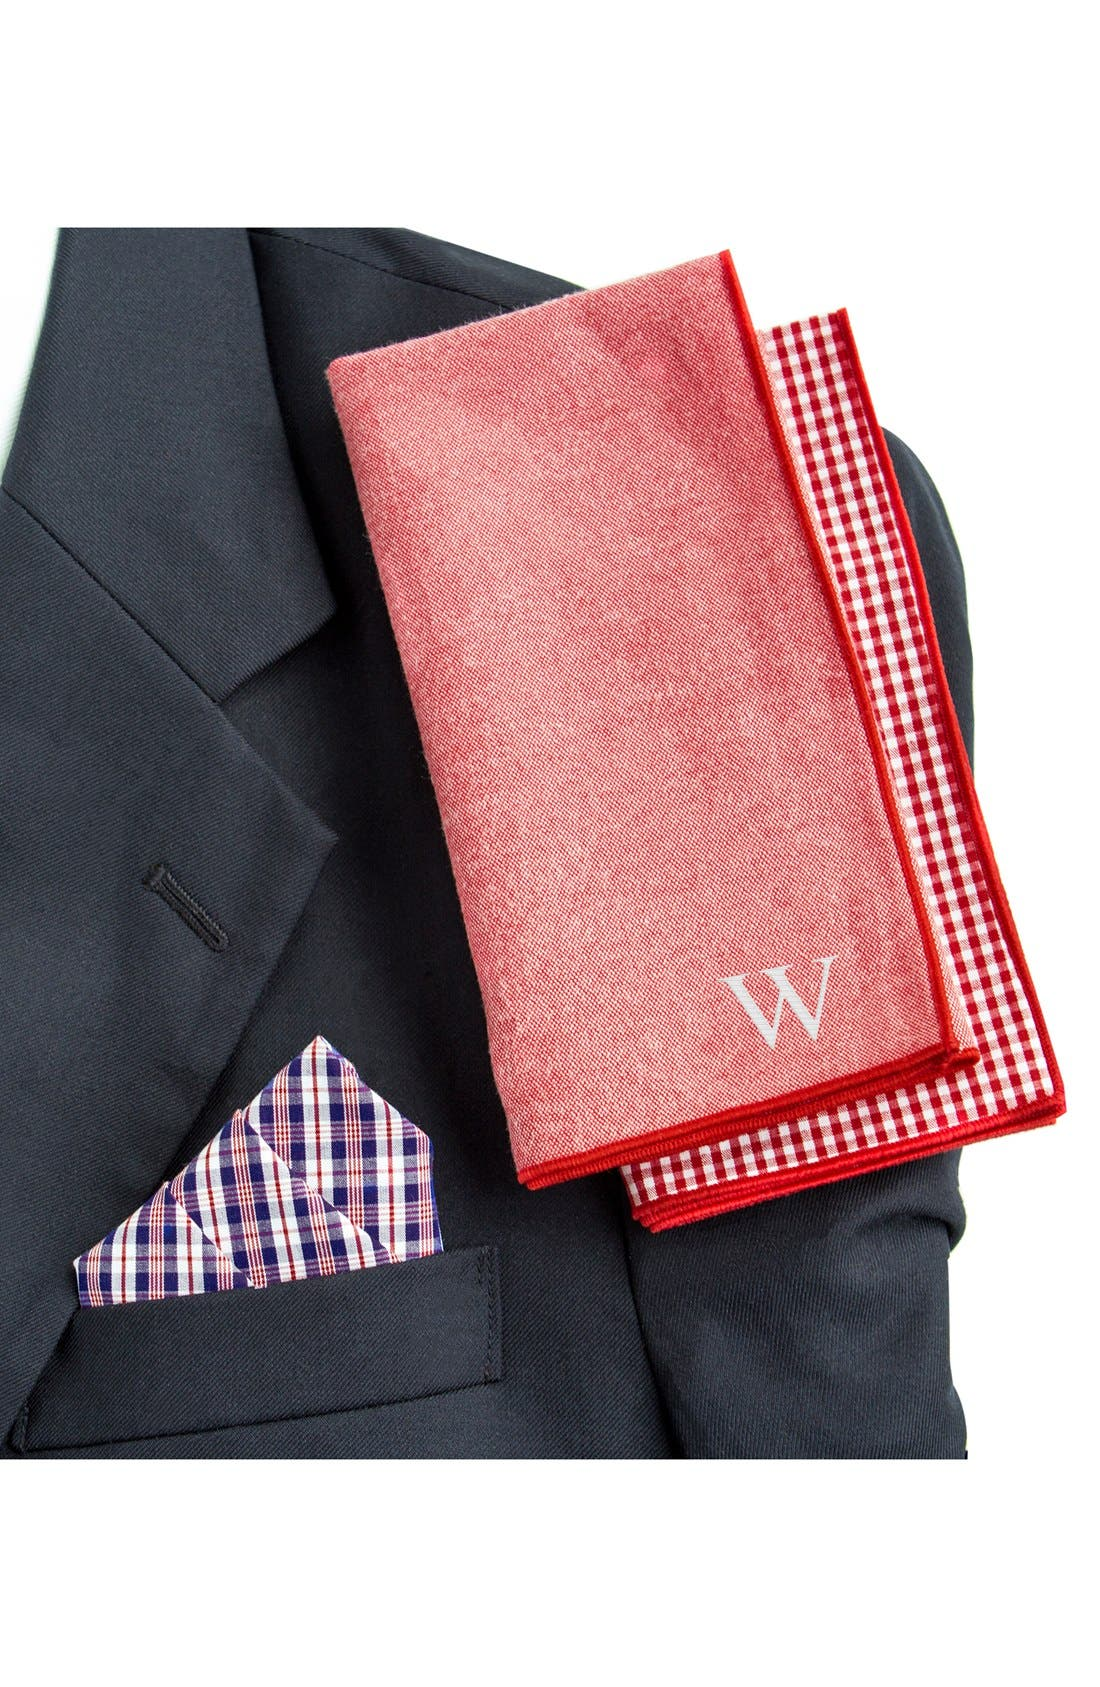 Set of 3 Monogram Pocket Squares,                             Alternate thumbnail 2, color,